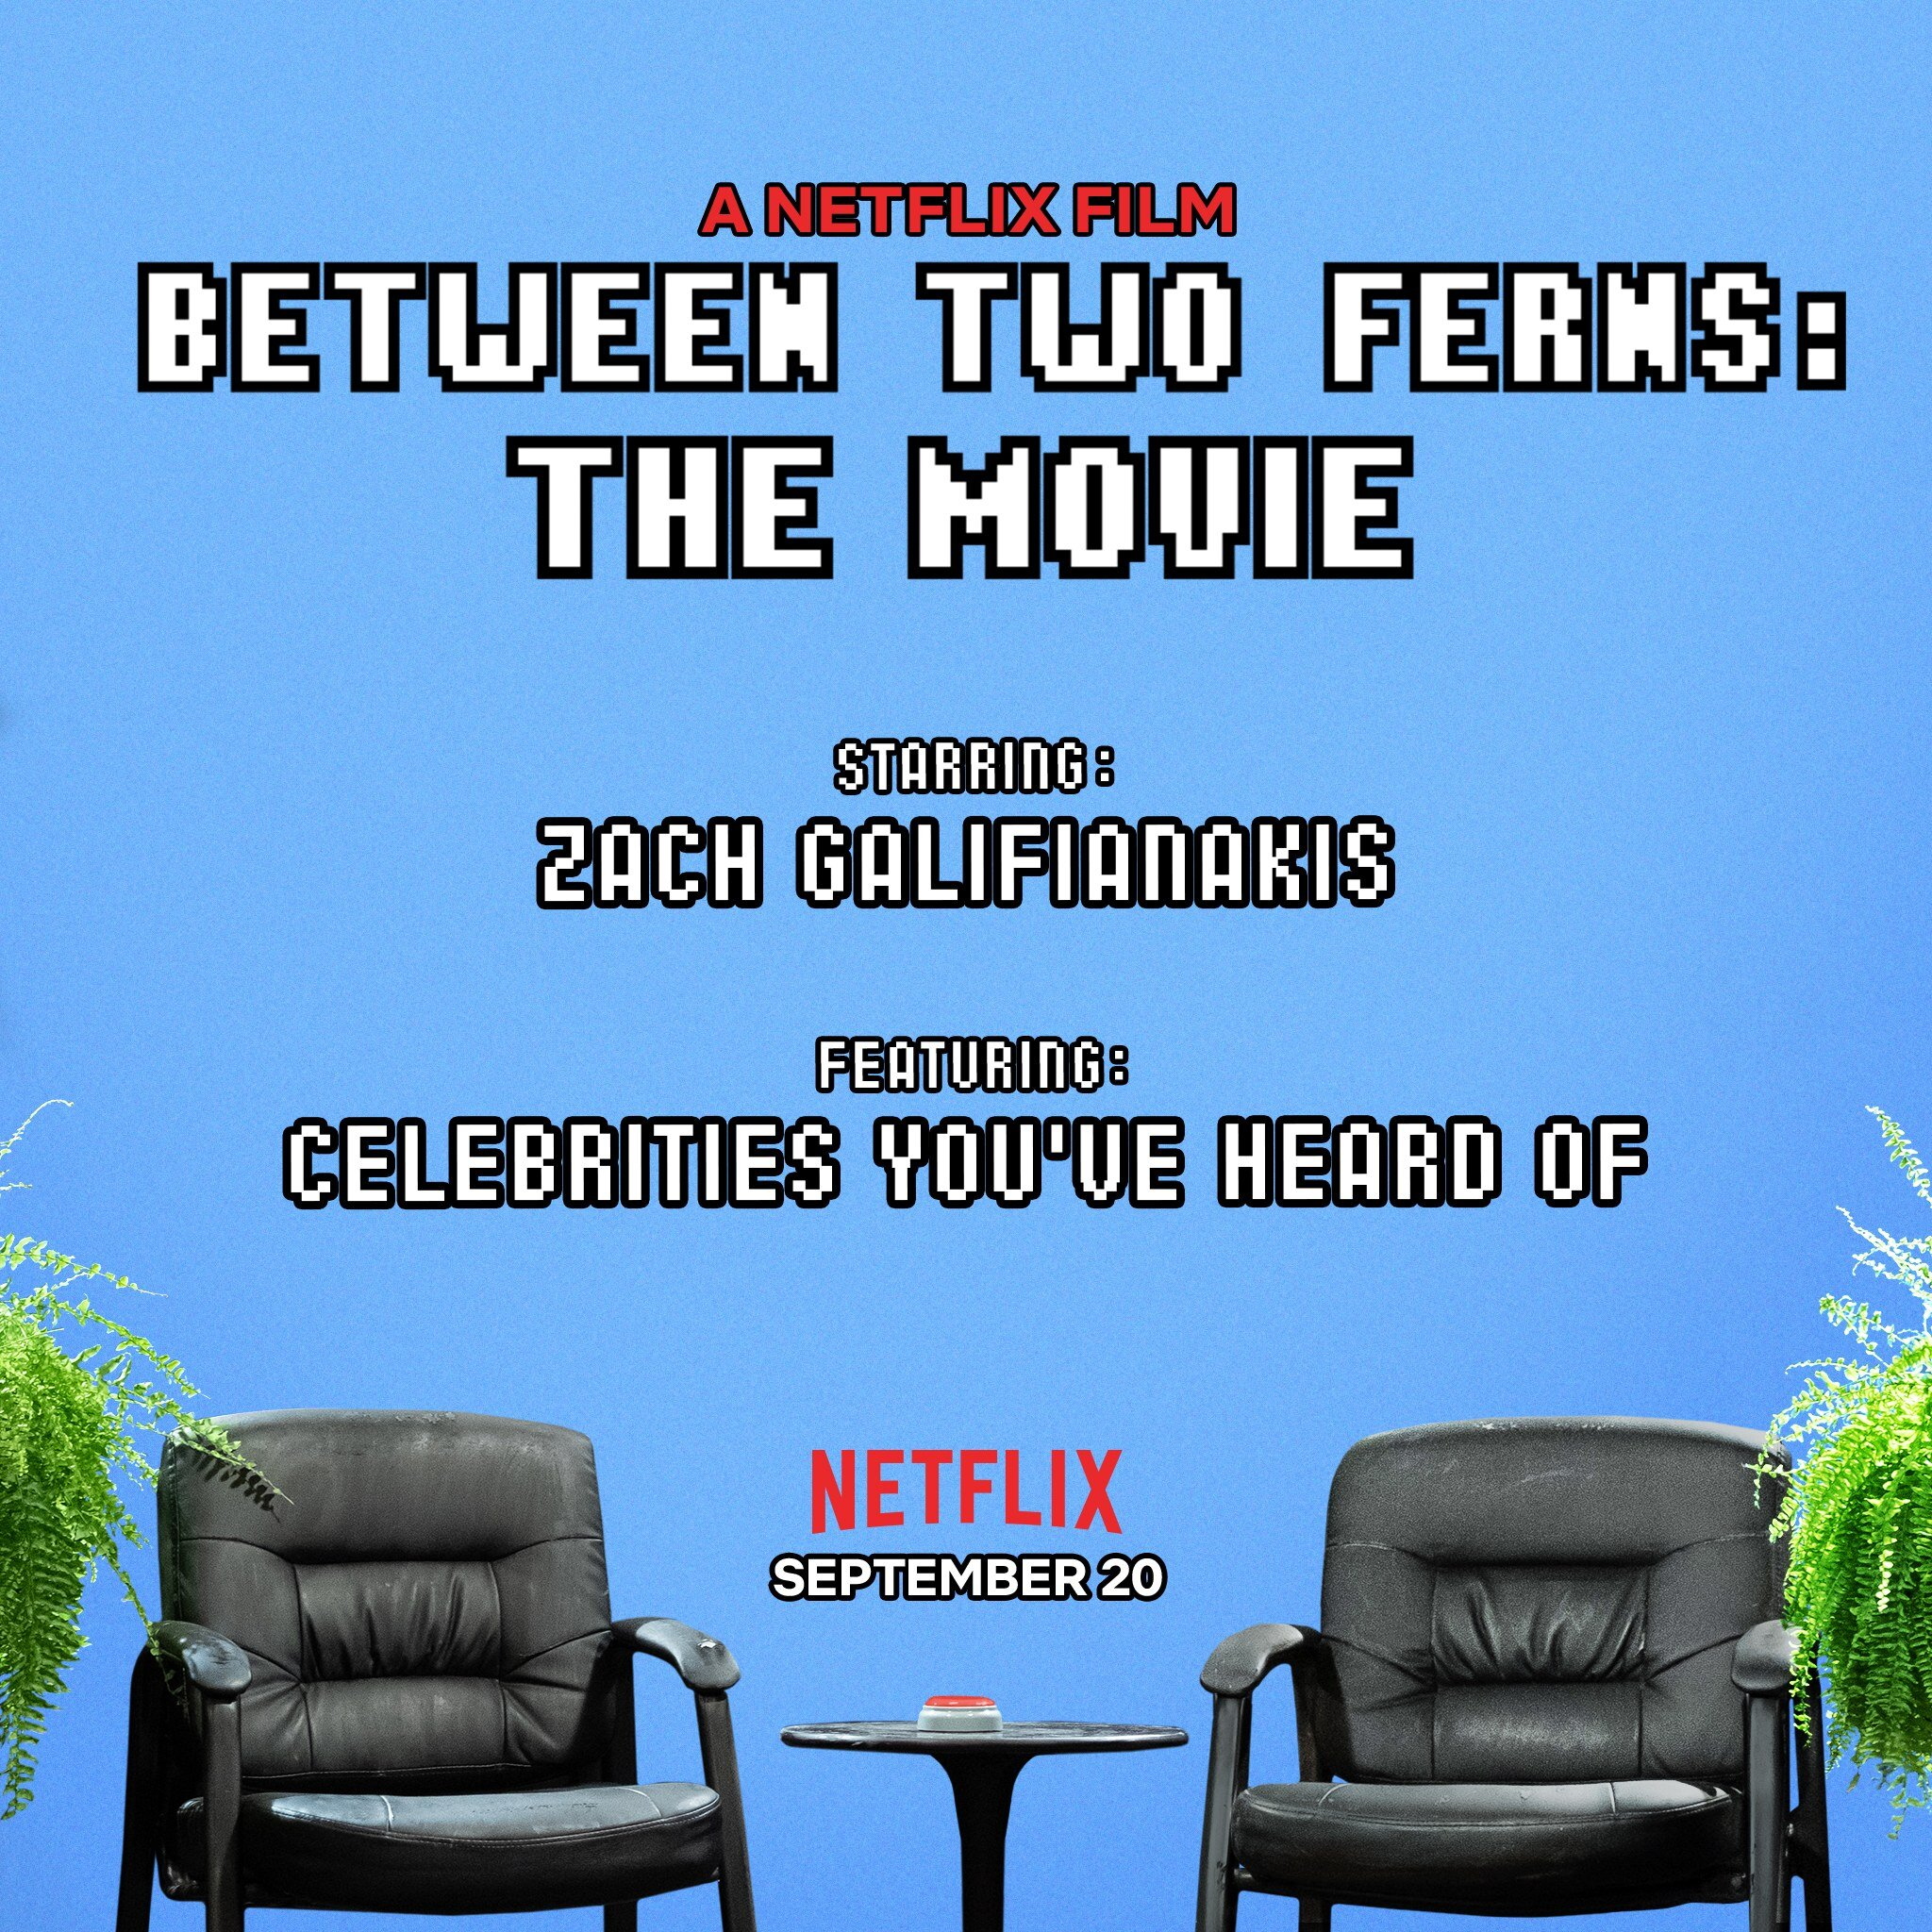 Between-two-Ferns.-A-Netflix-Movie.-It's-Really-Realistic..jpg